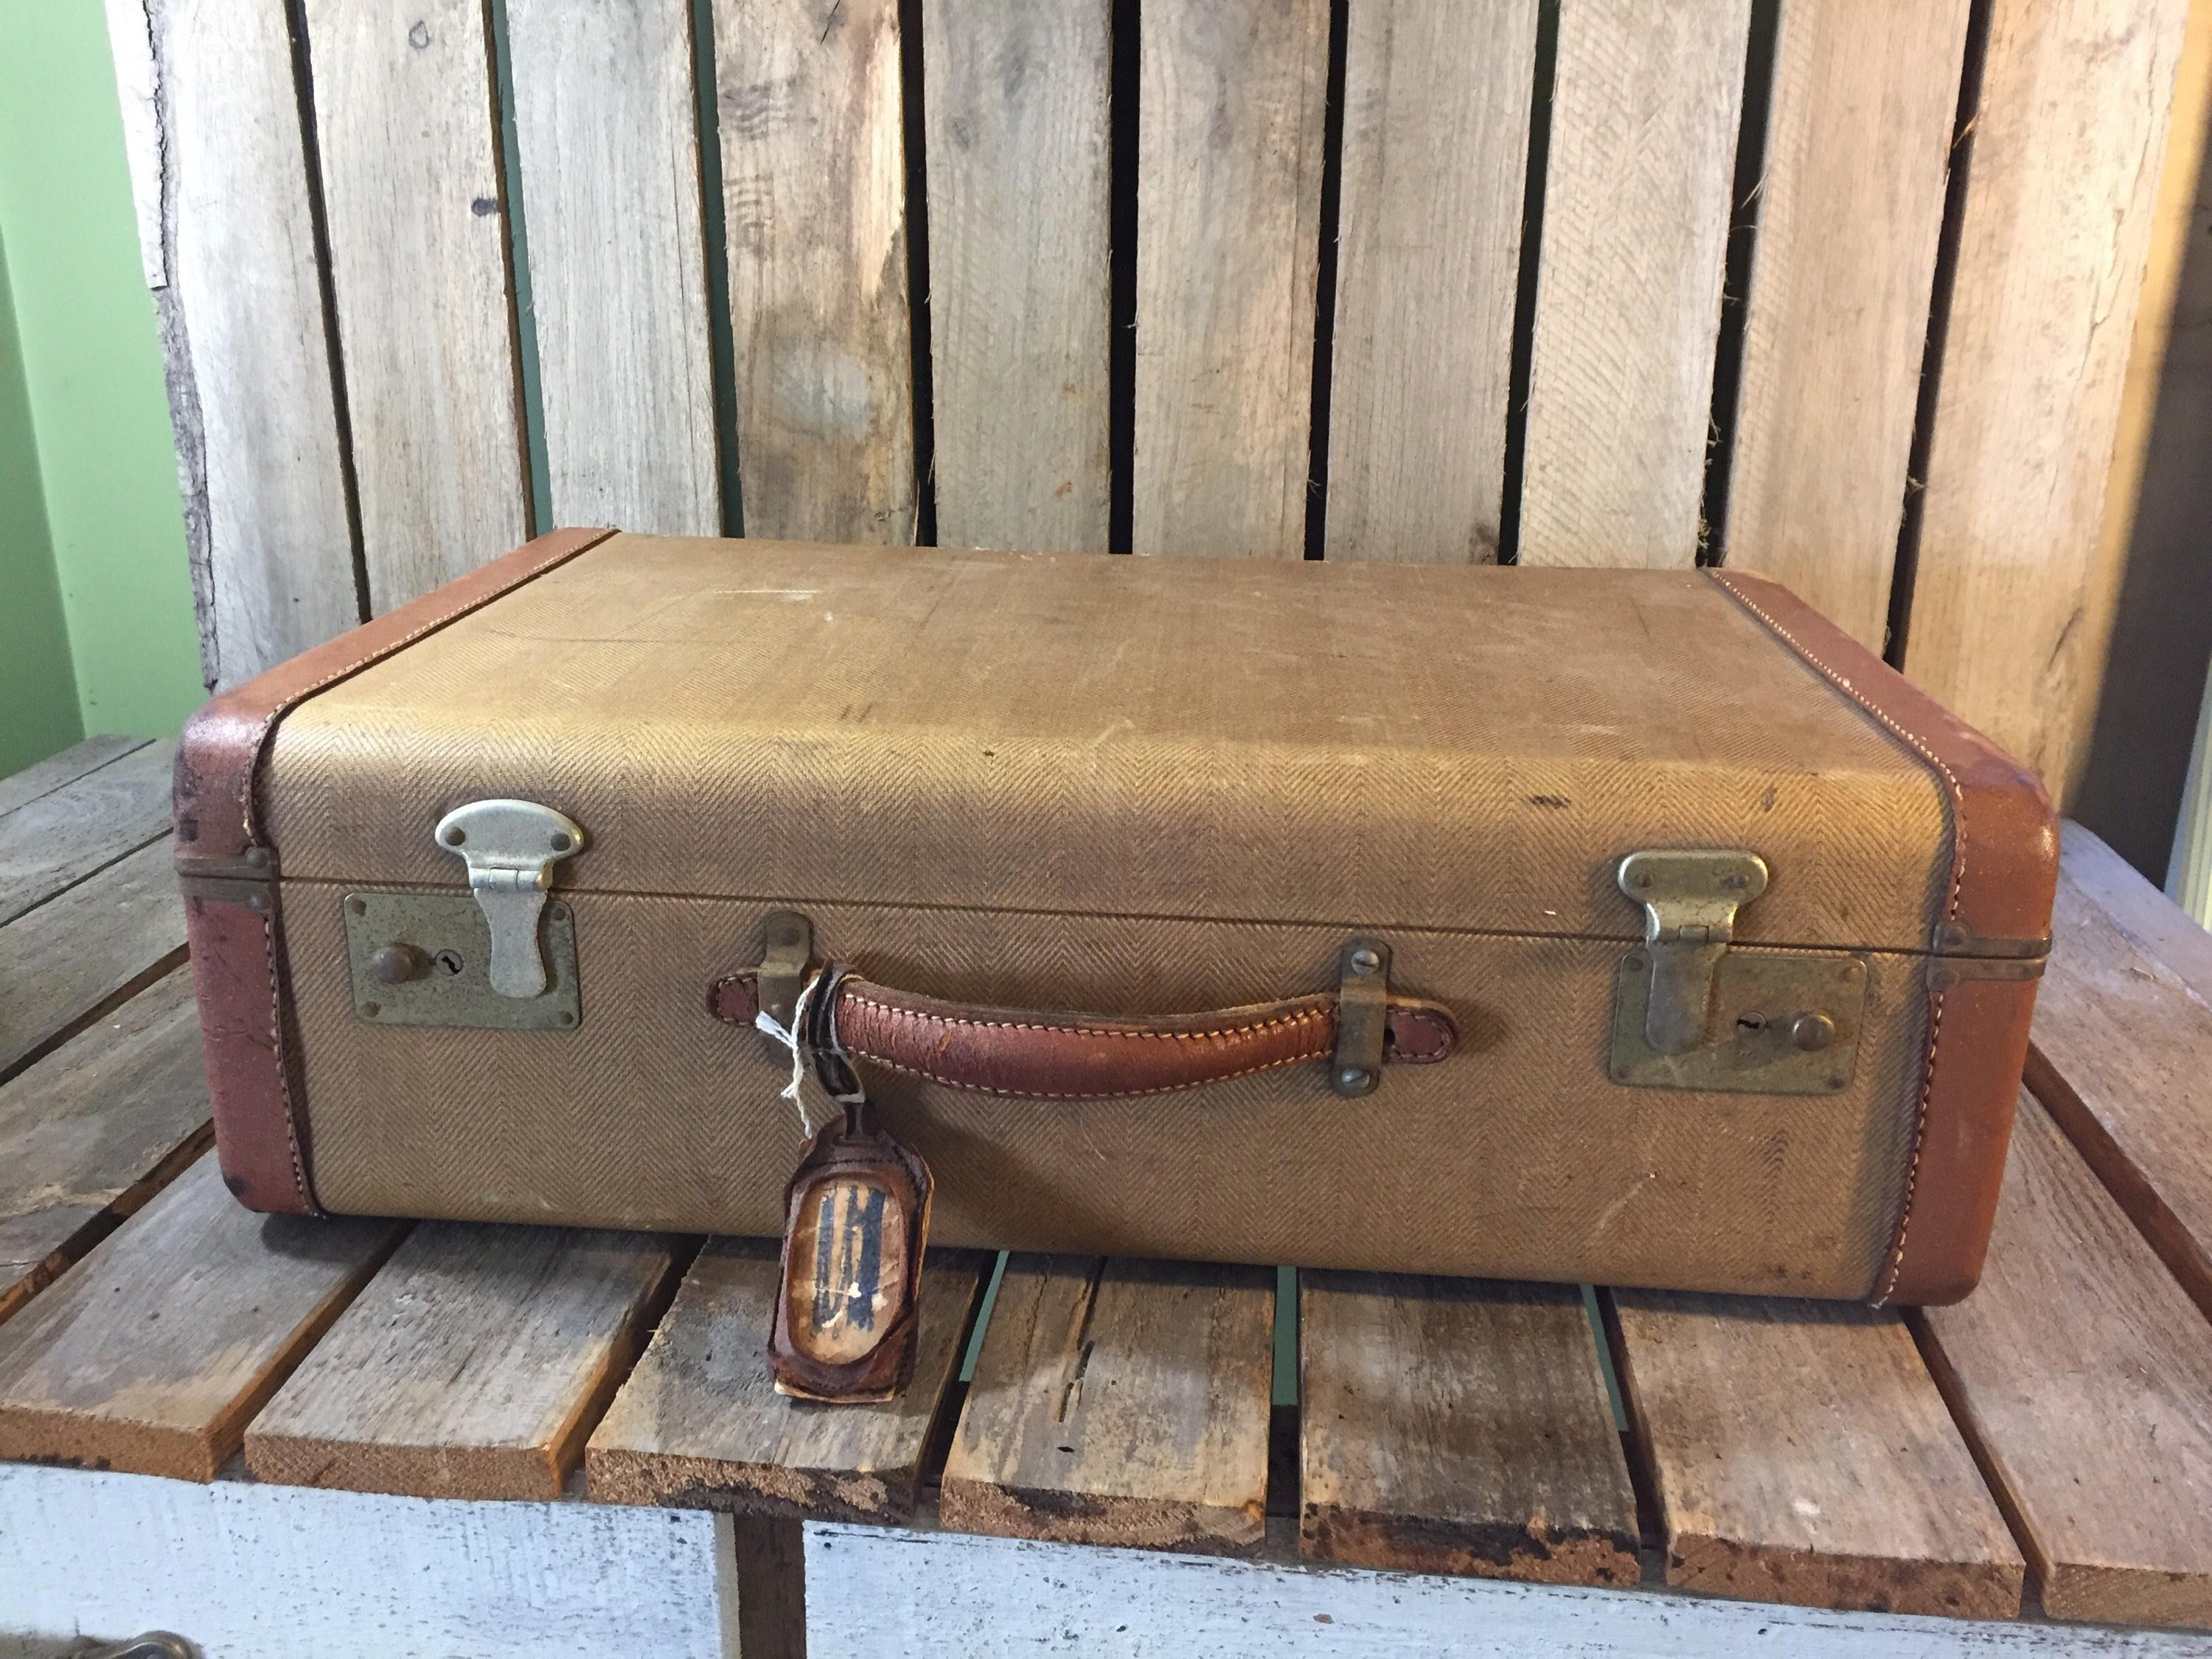 Vintage Decorative Suitcases Vintage Tweed Suitcase With Leather Trim Tweed Suitcase